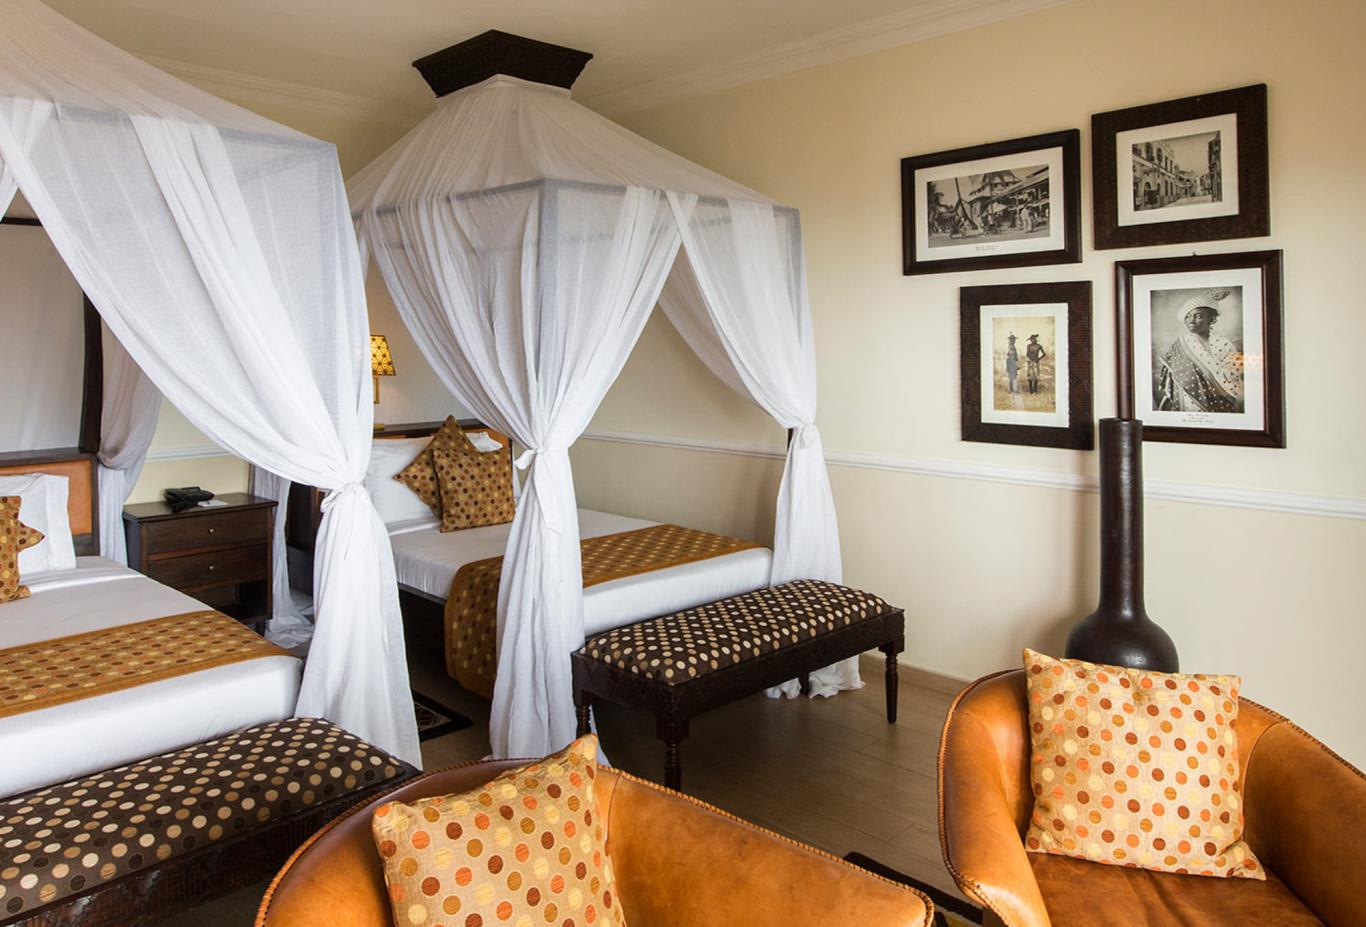 Rooms - Luxury Junior Suite3